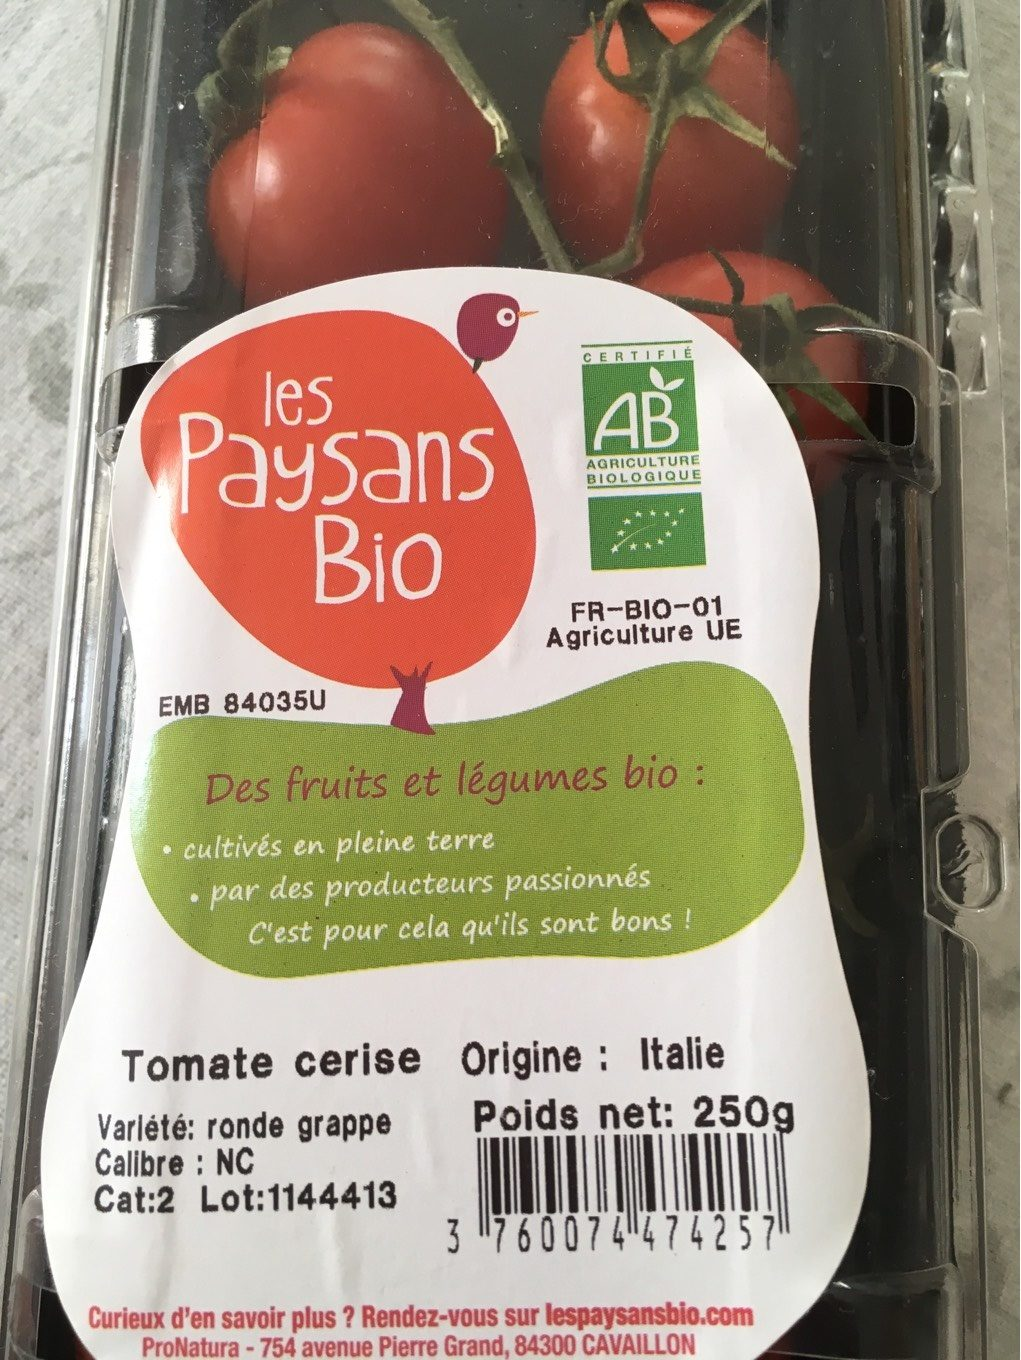 Tomates cerises rondes grappes - Product - fr